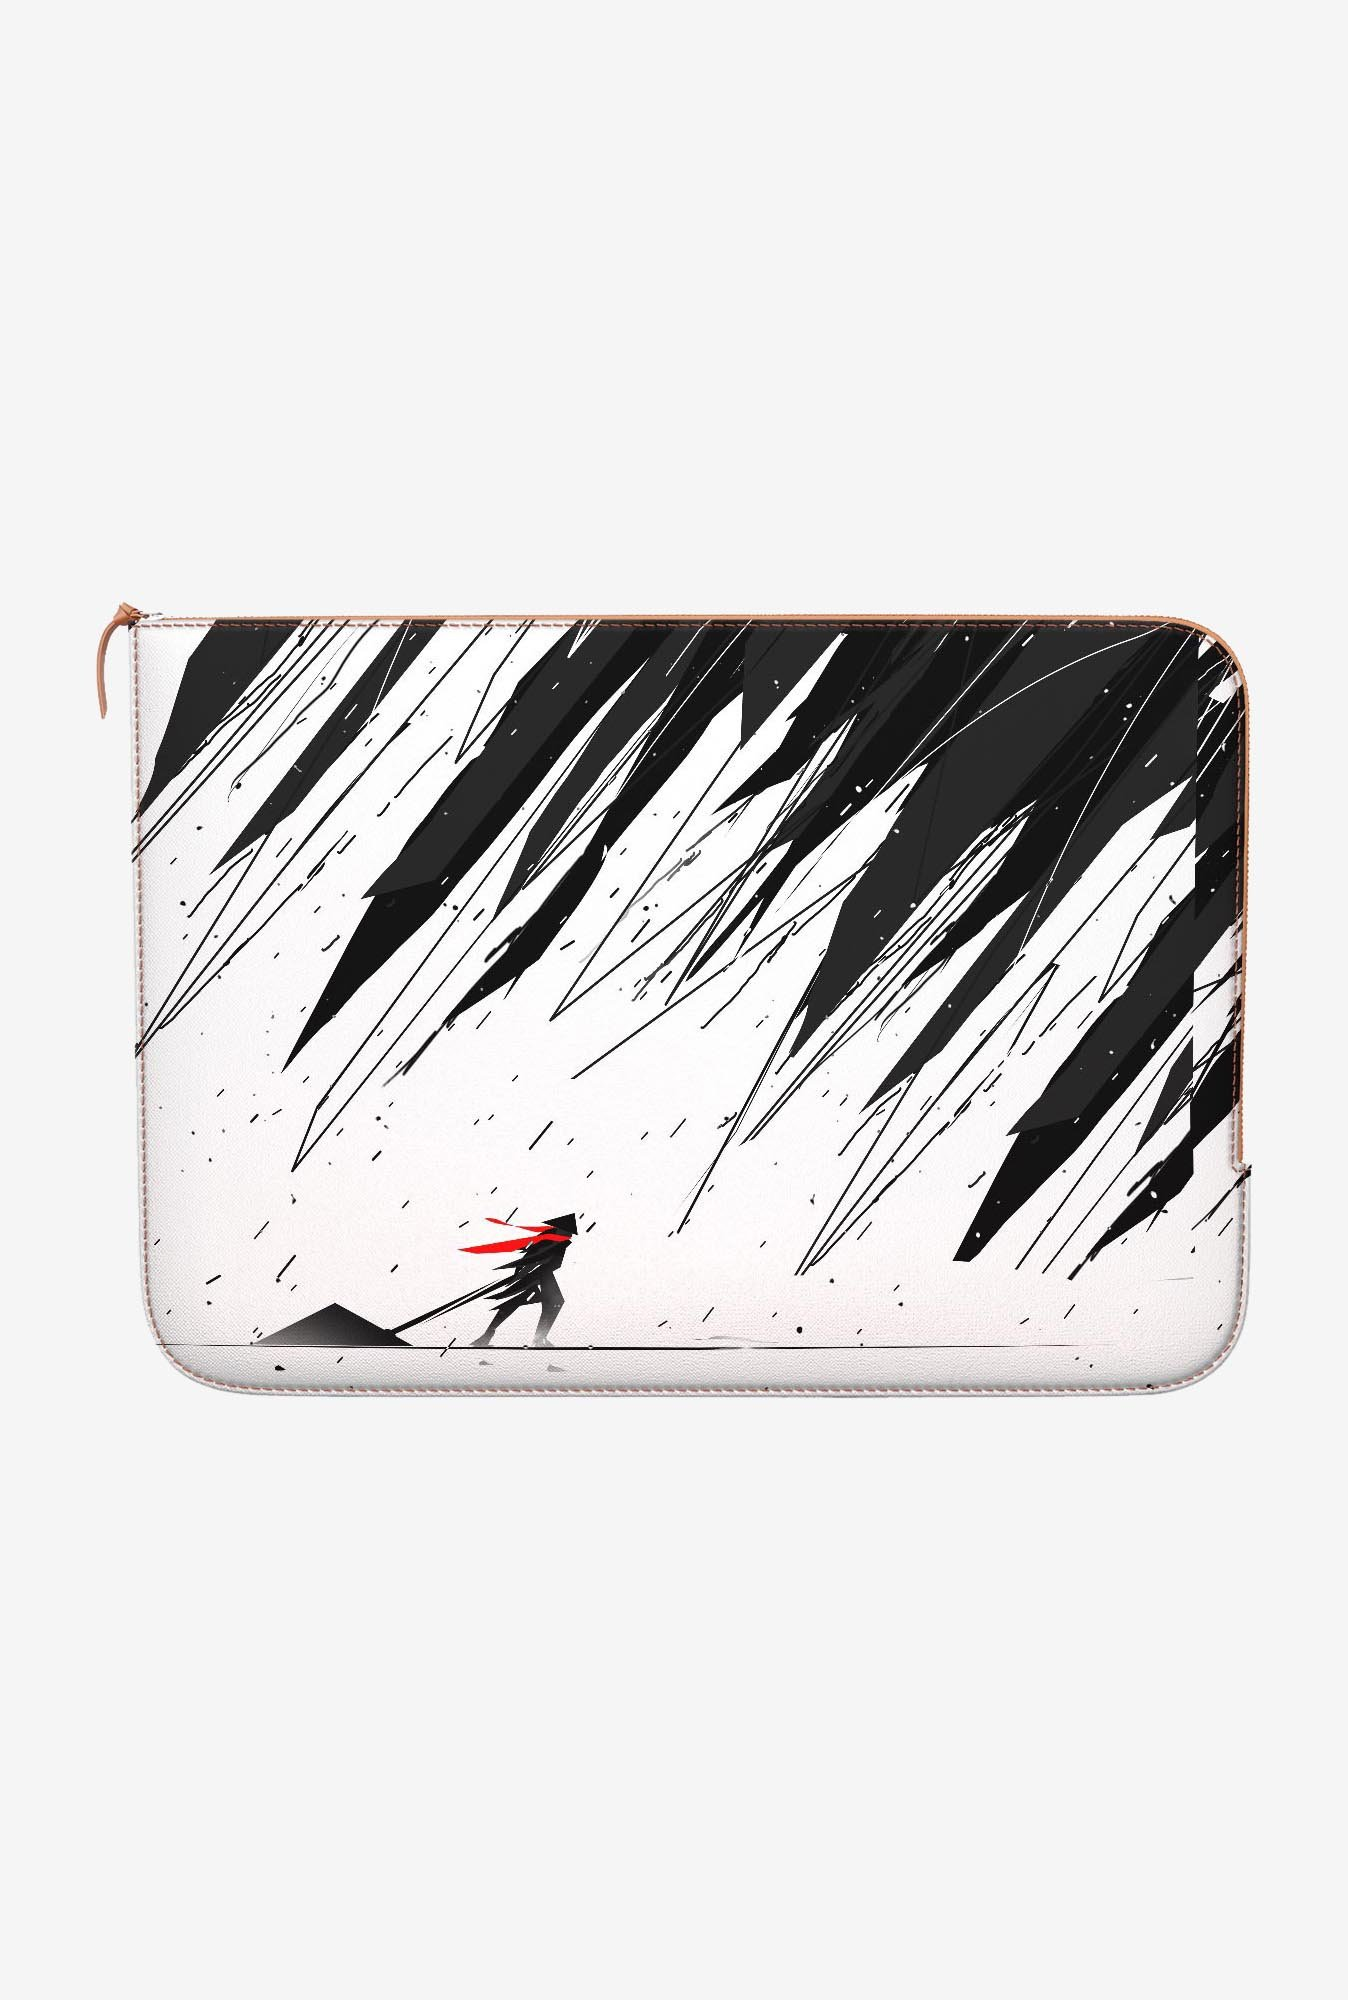 DailyObjects Geometric Storm MacBook Air 11 Zippered Sleeve